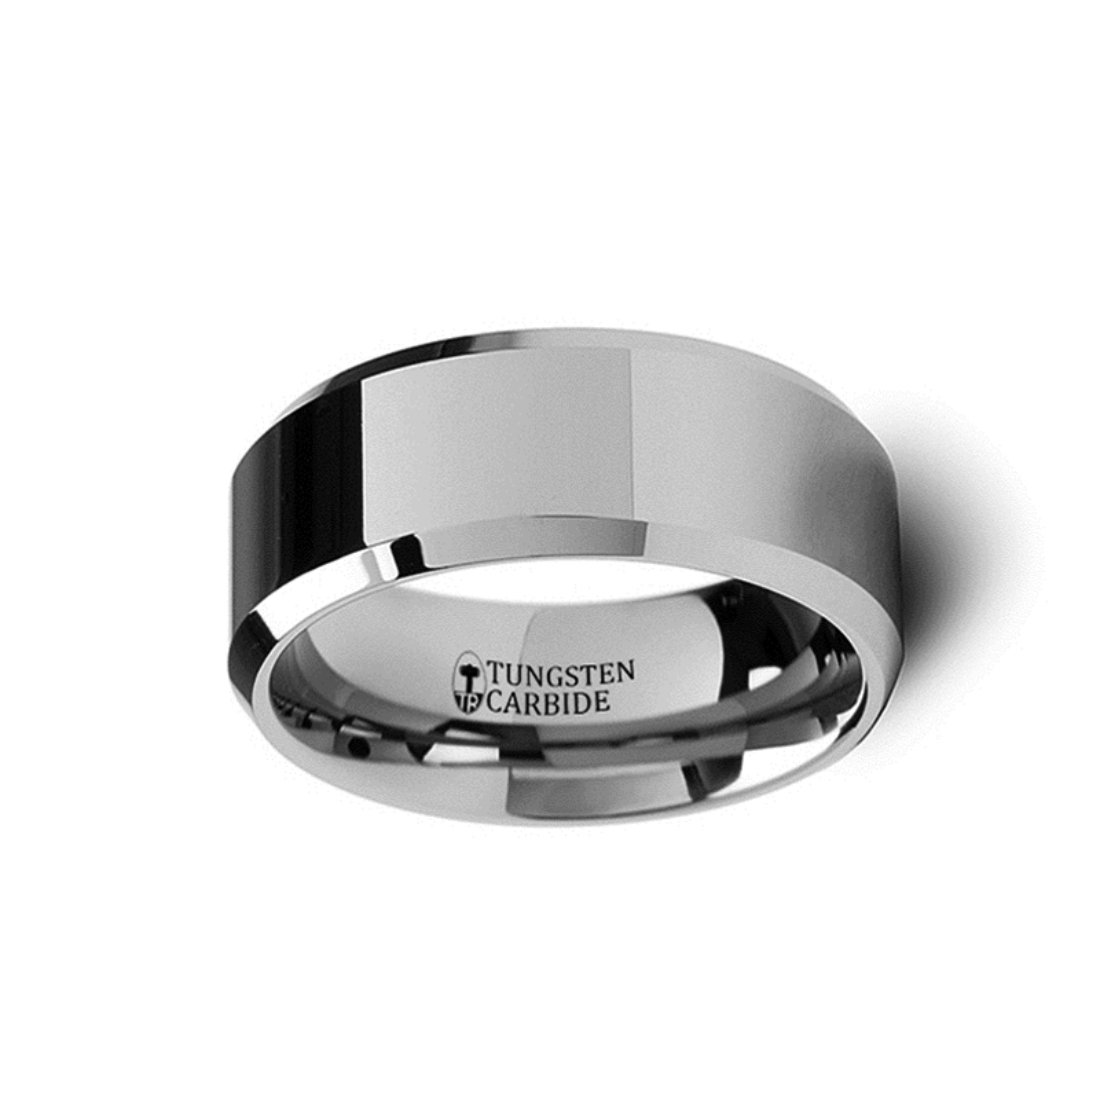 Thorsten Corinthian Beveled Edge Flat Tungsten Carbide Ring 10mm Wide Wedding Band with Custom Inside Engraved Personalized from Roy Rose Jewelry